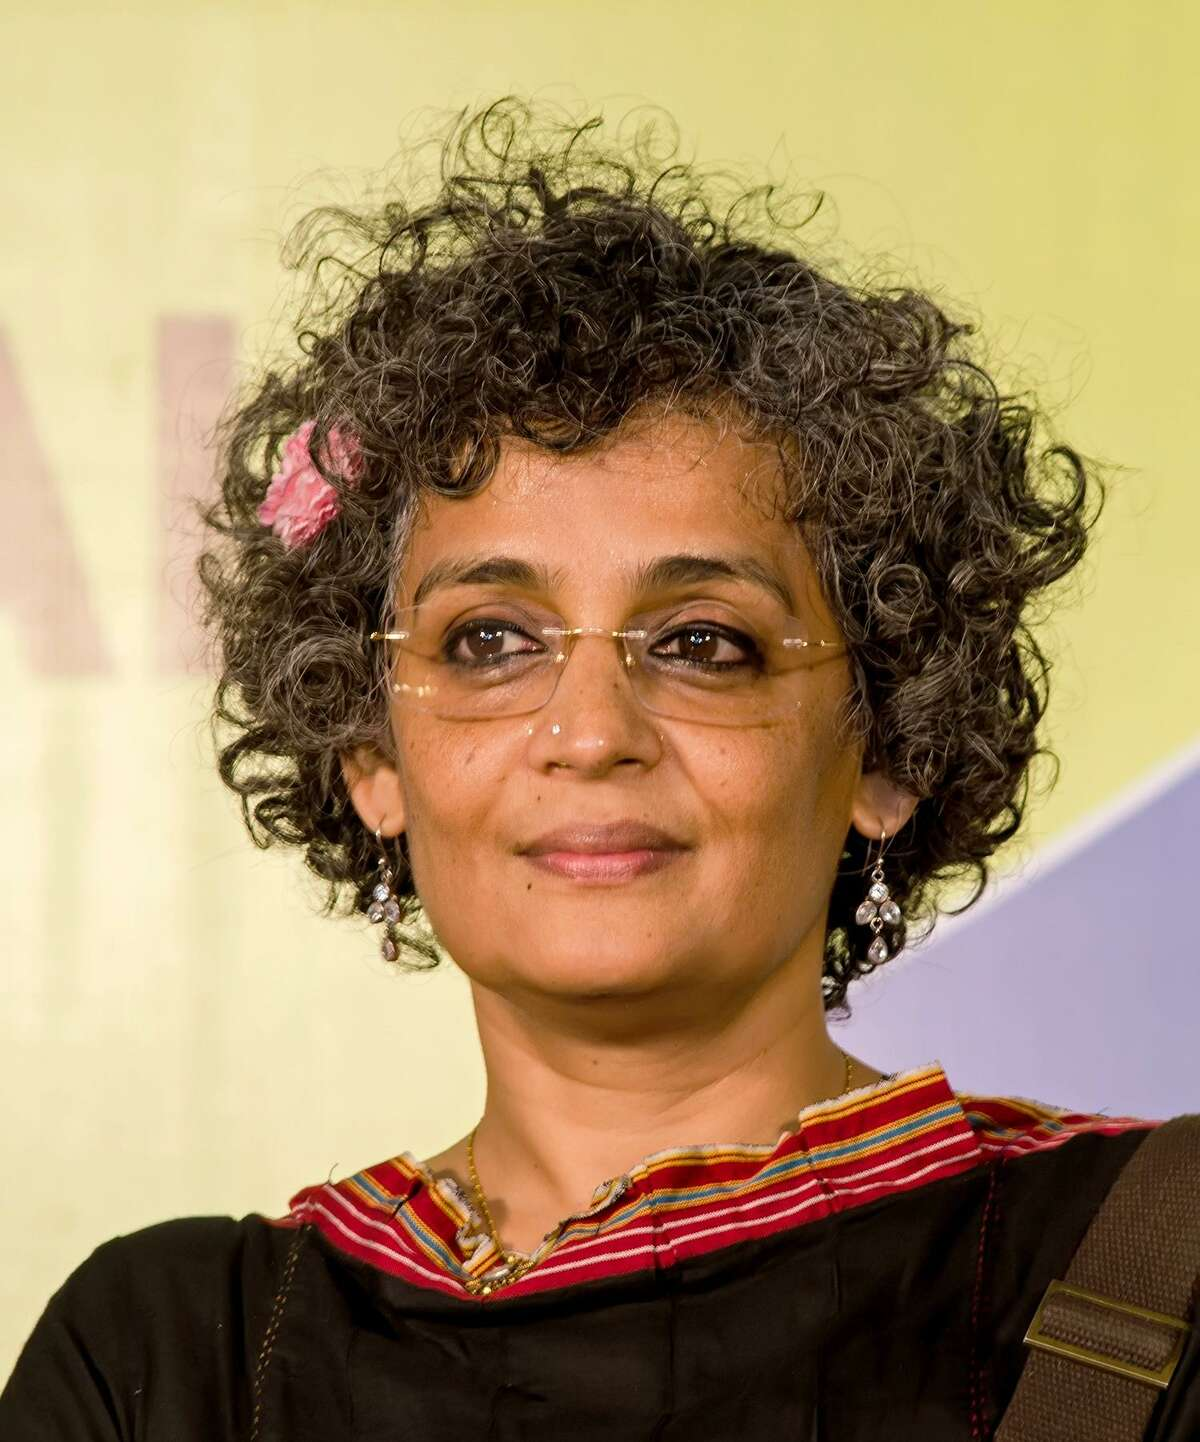 Booker Prize-winning author Arundhati Roy returns to fiction with mixed results.